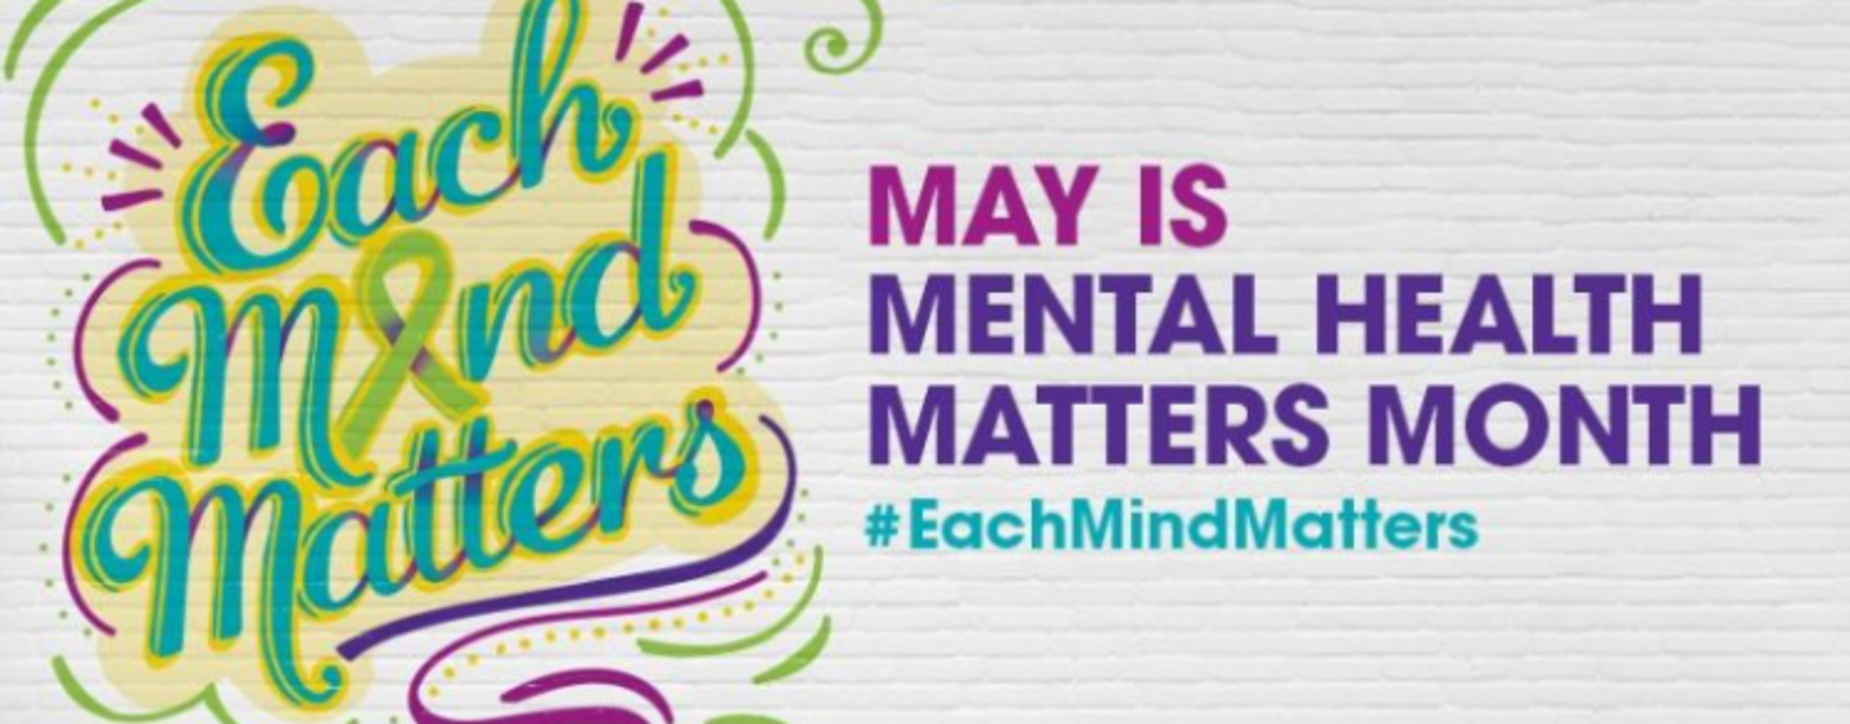 May Mental Health Month